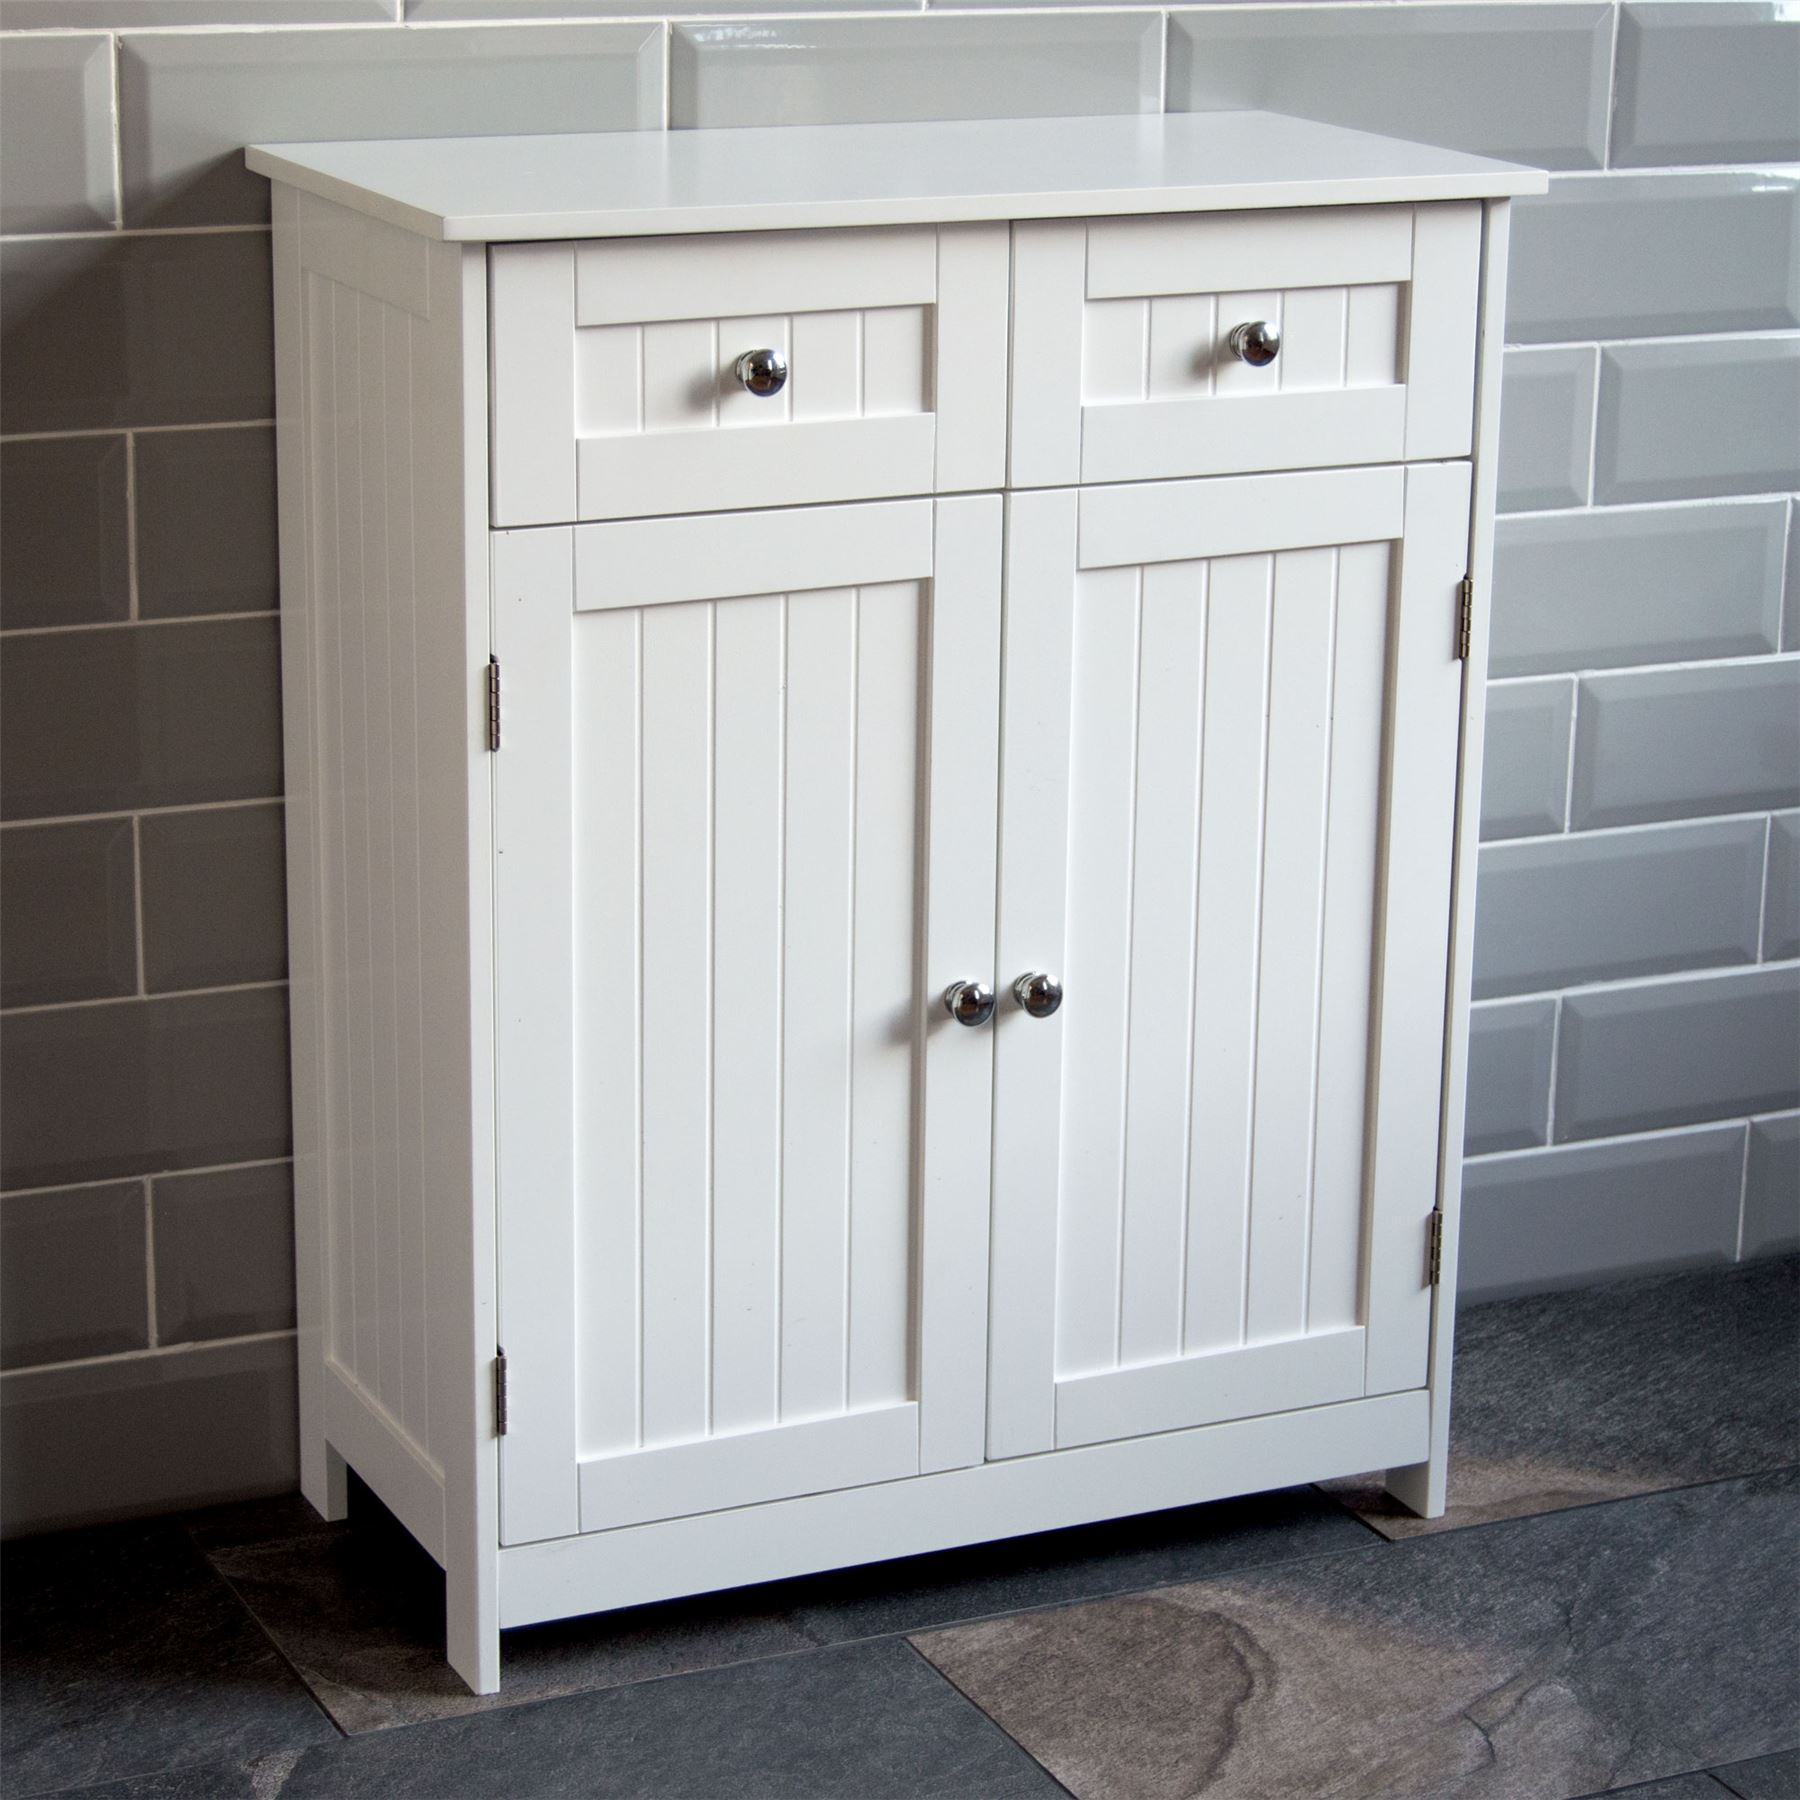 storage cabinets for bathroom priano bathroom cabinet 2 drawer 2 door storage cupboard 26836